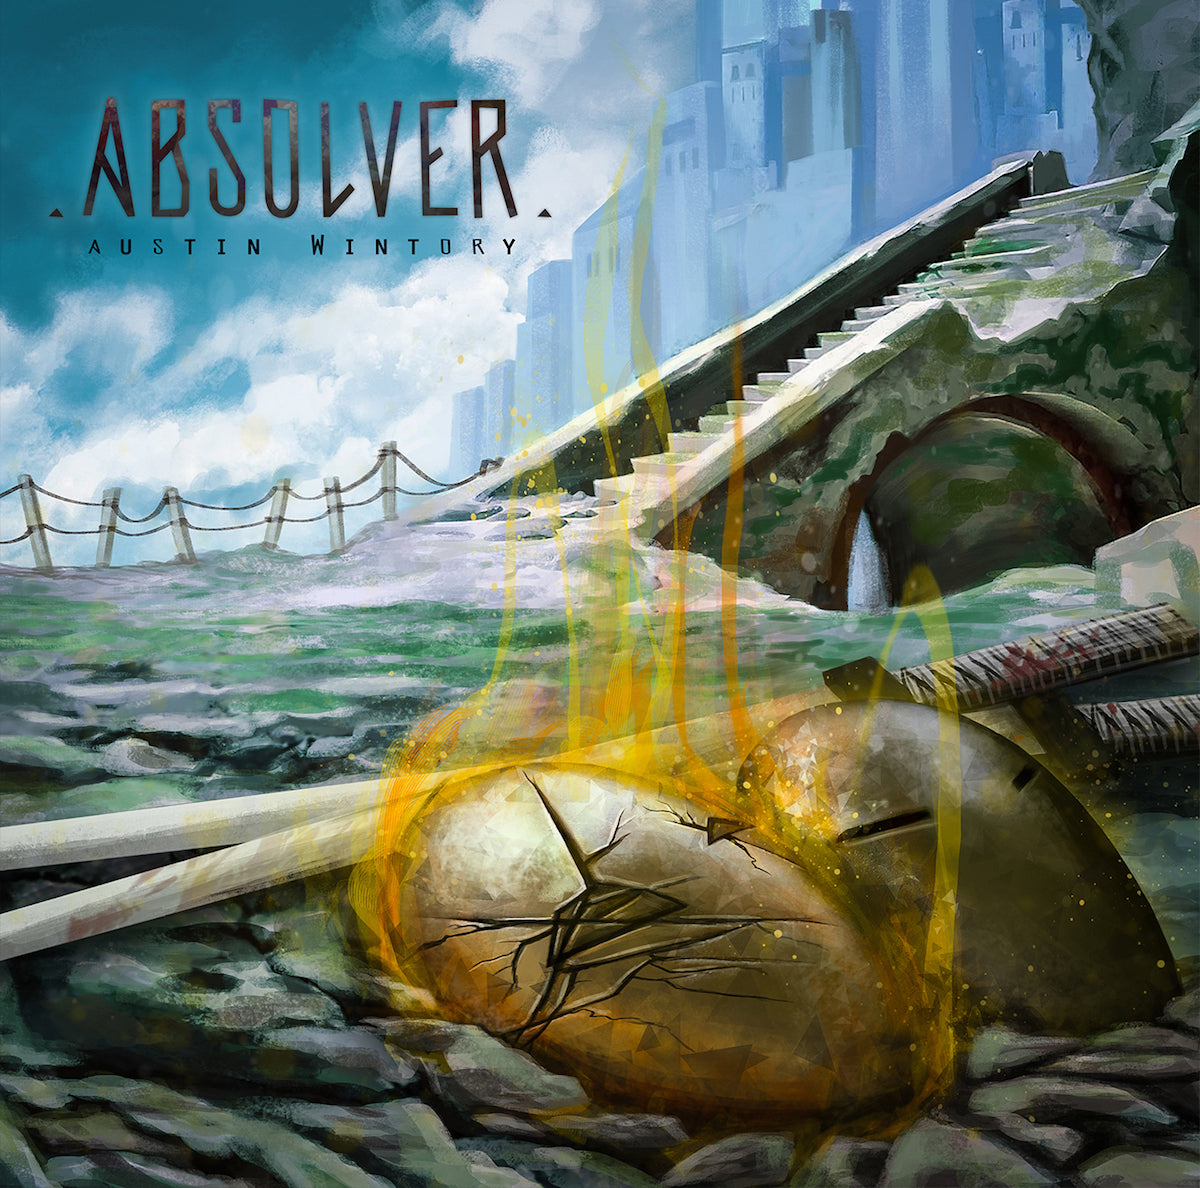 Bermúdez's painting for the Absolver soundtrack CD: